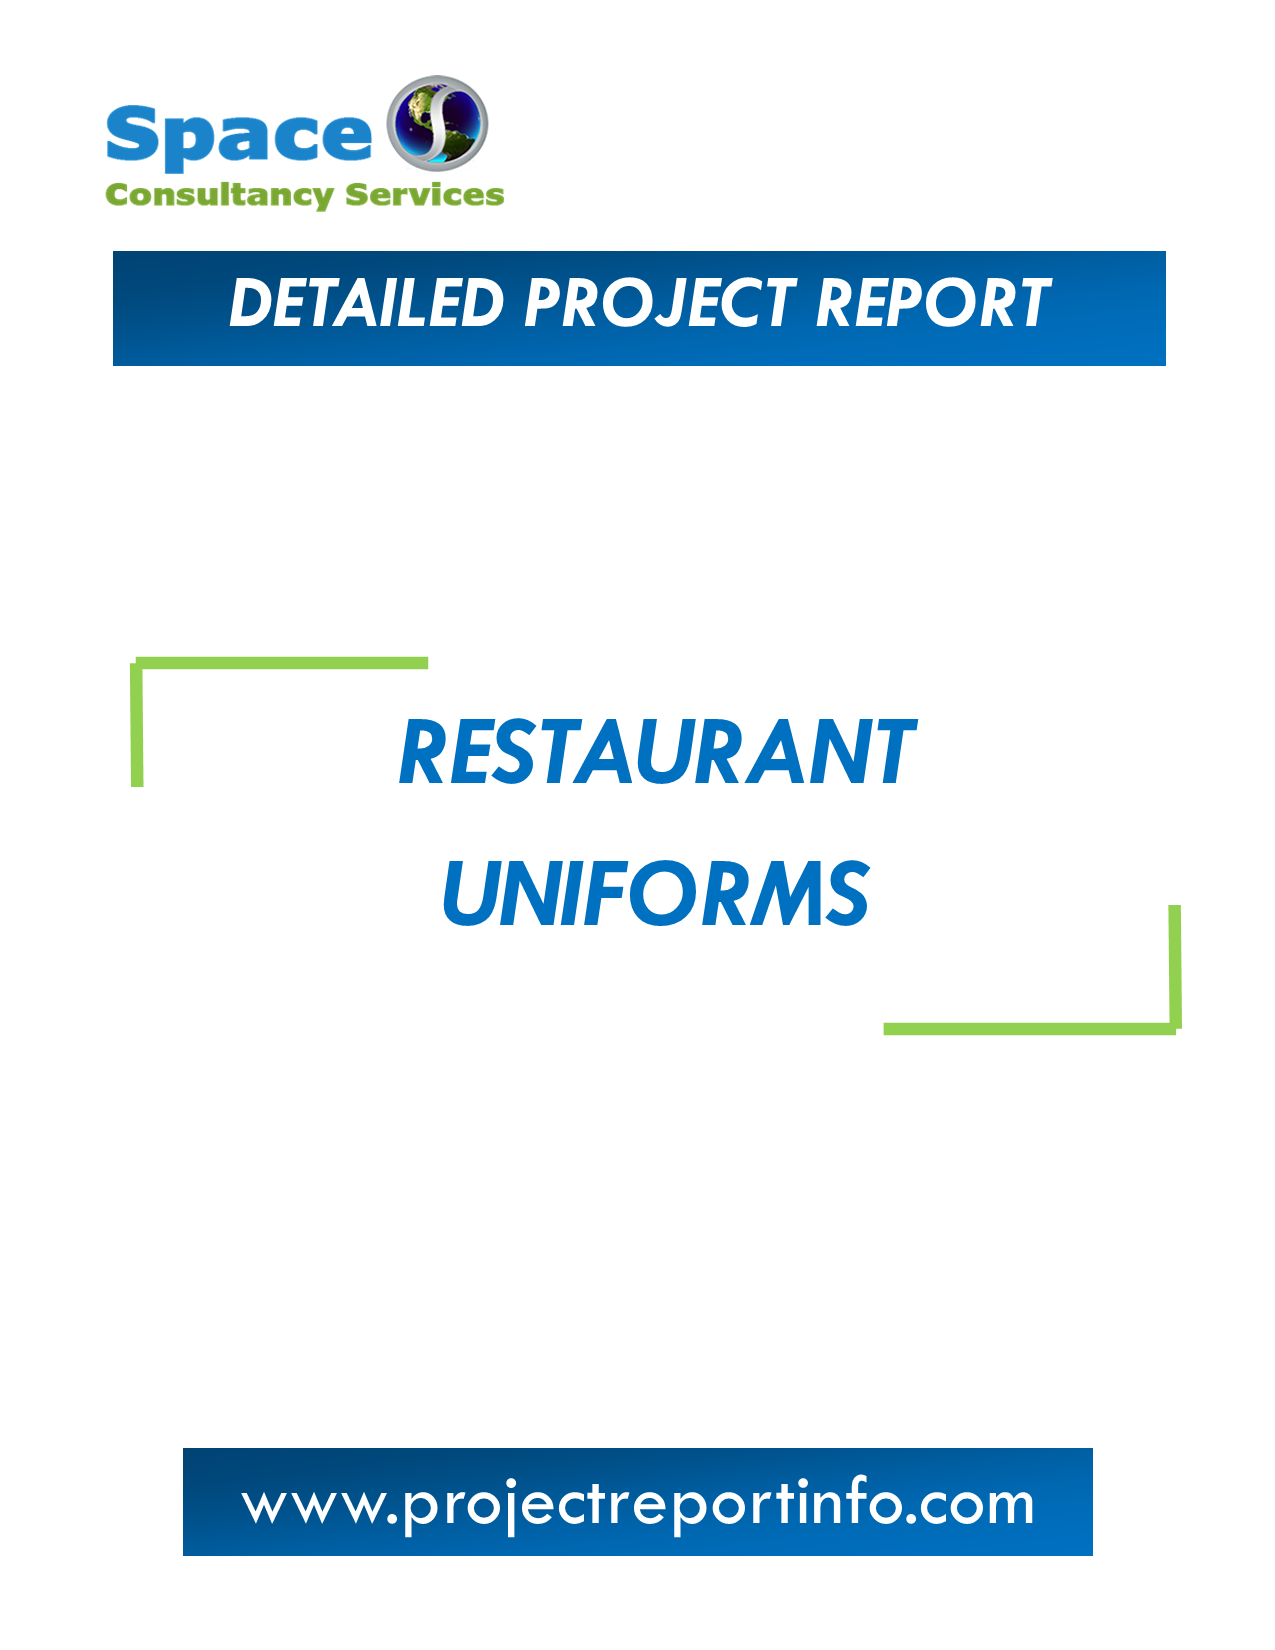 Project Report on Restaurant Uniforms Manufacturing